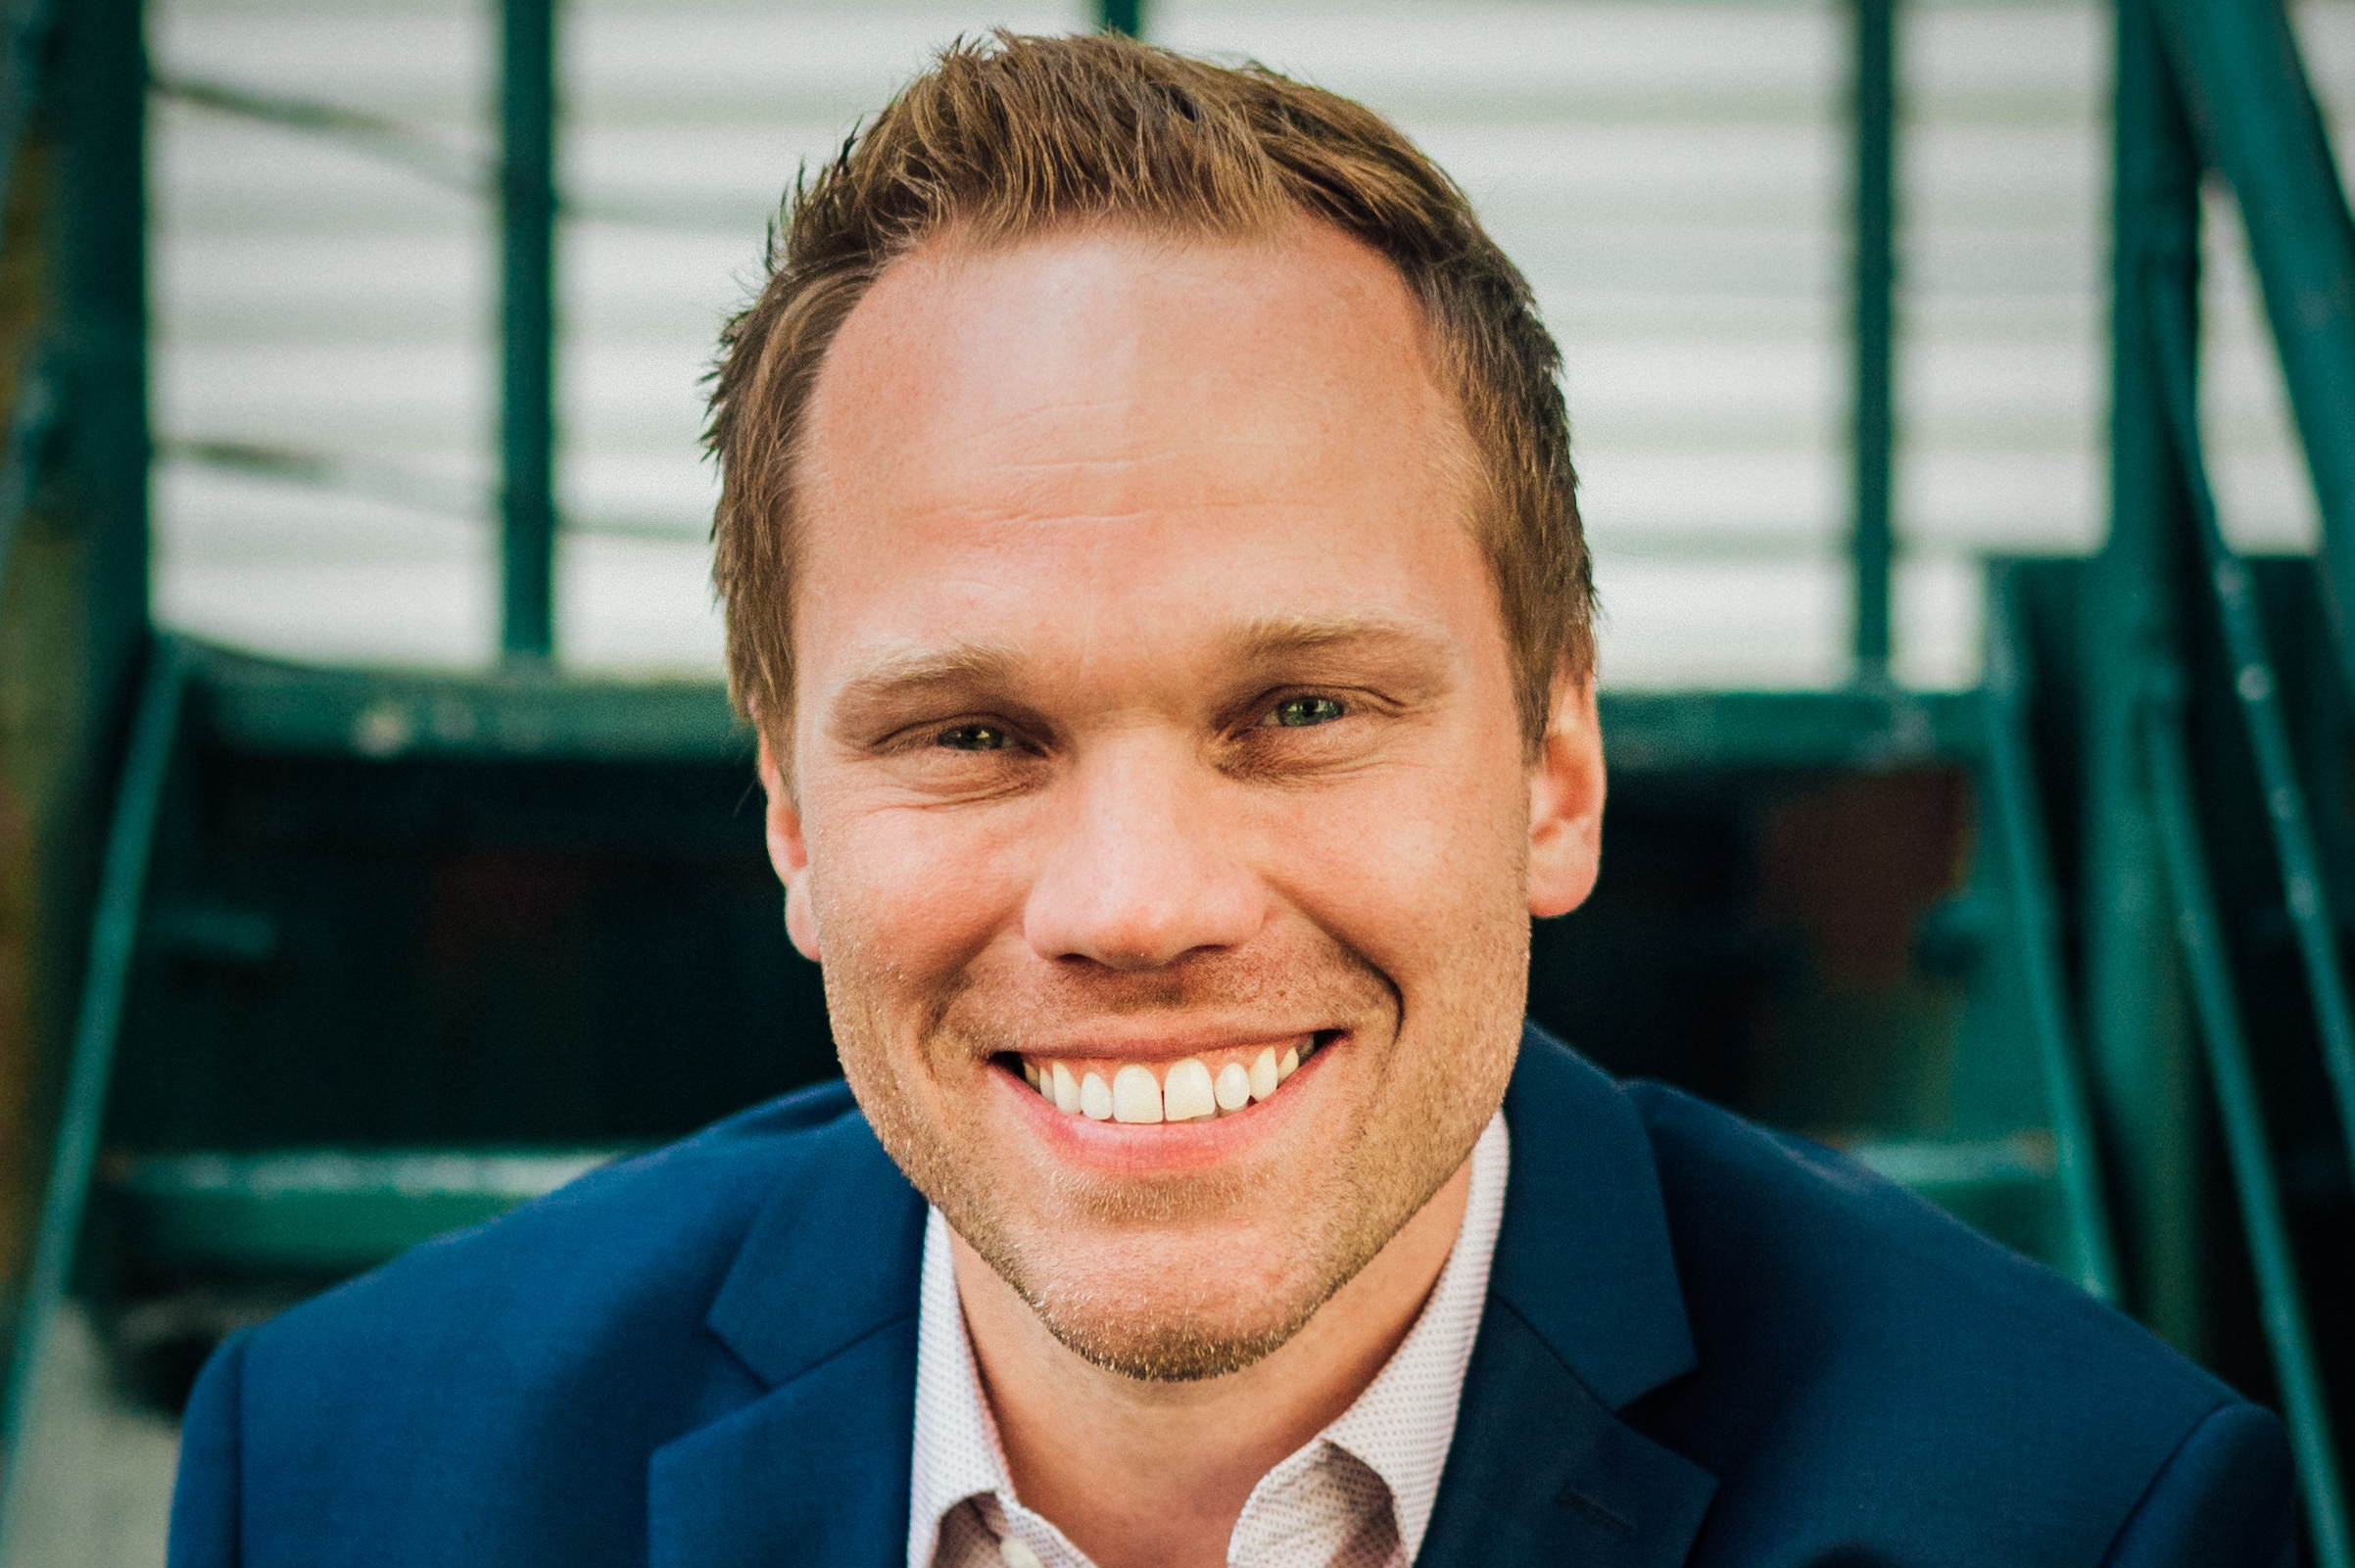 Trevor Pawl Plans to Make Michigan a Leader in Mobility and Electrification